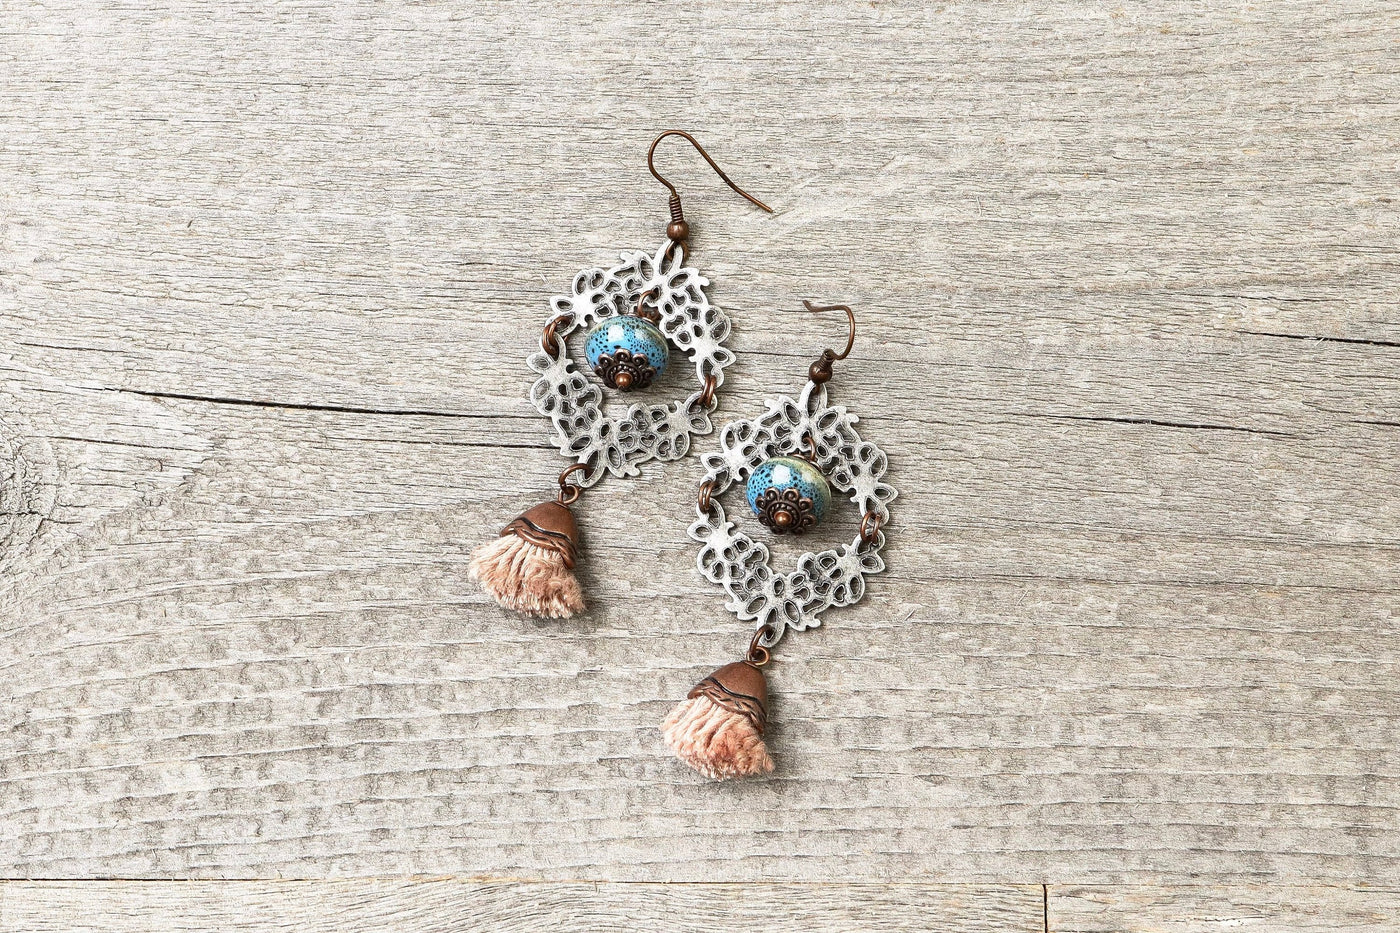 Filigree Tassel Blue Earrings - Antique Silver Ceramic Earthy Dangle Boho Gypsy Hippie Unique Statement Bohemian Rustic Handmade Jewelry